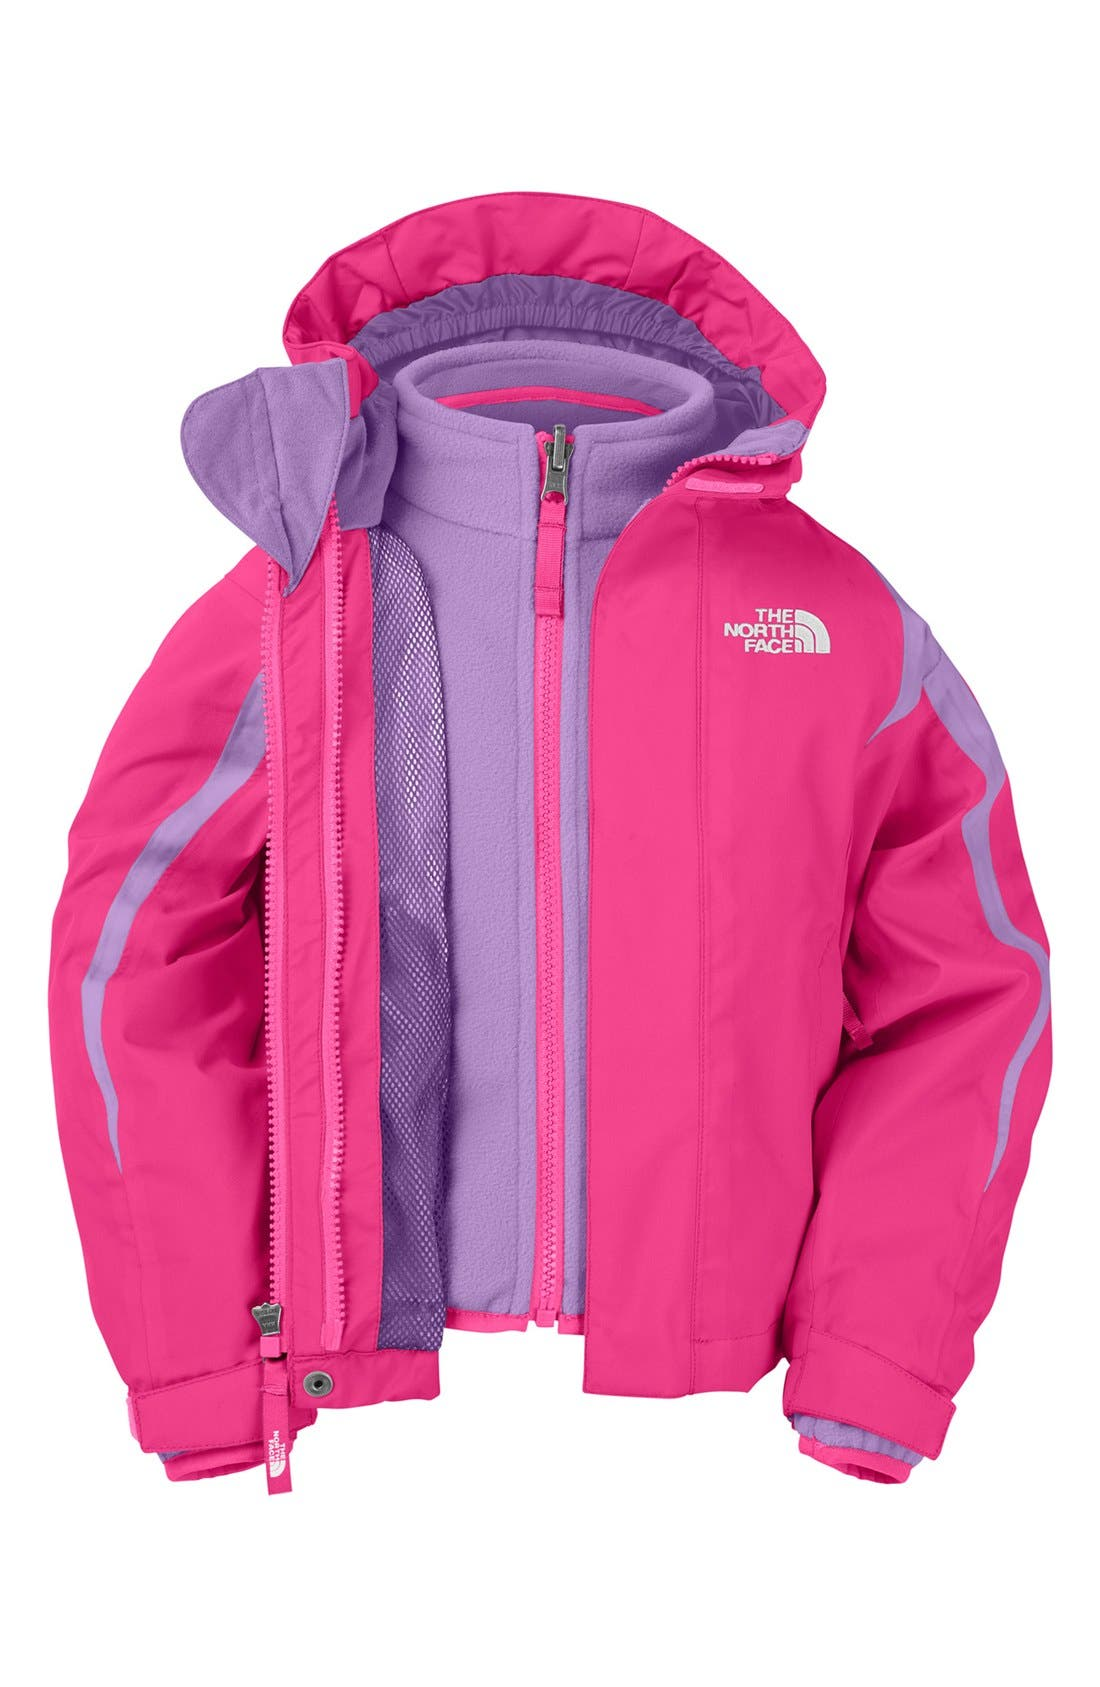 Main Image - The North Face 'Mountain View TriClimate®' 3-in-1 Jacket (Toddler Girls)